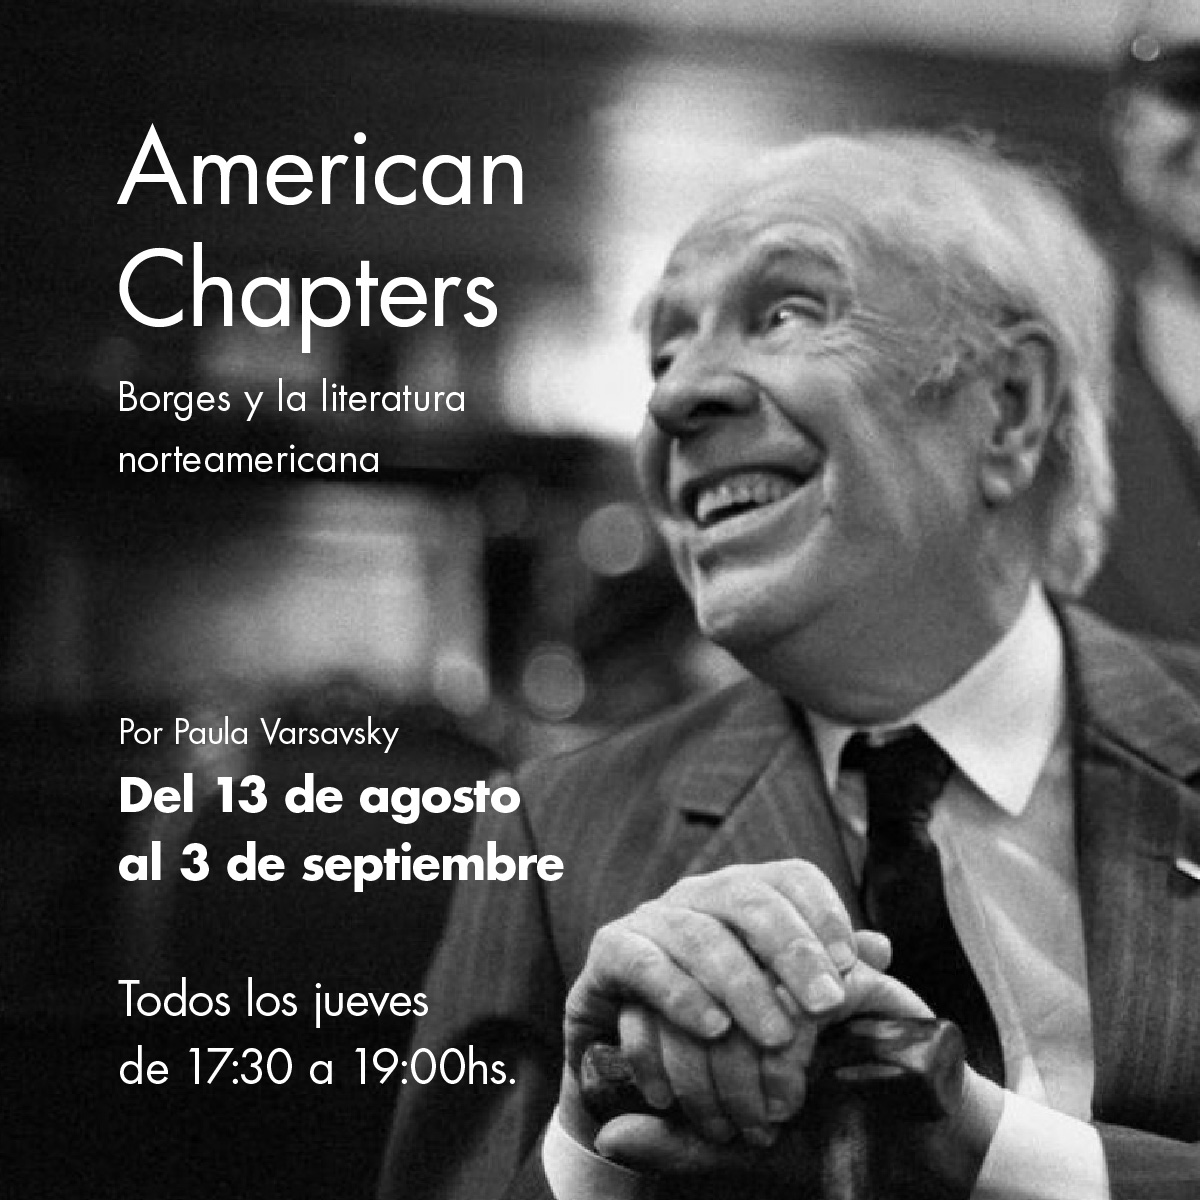 American-Chapters-Borges-posteo-general-2